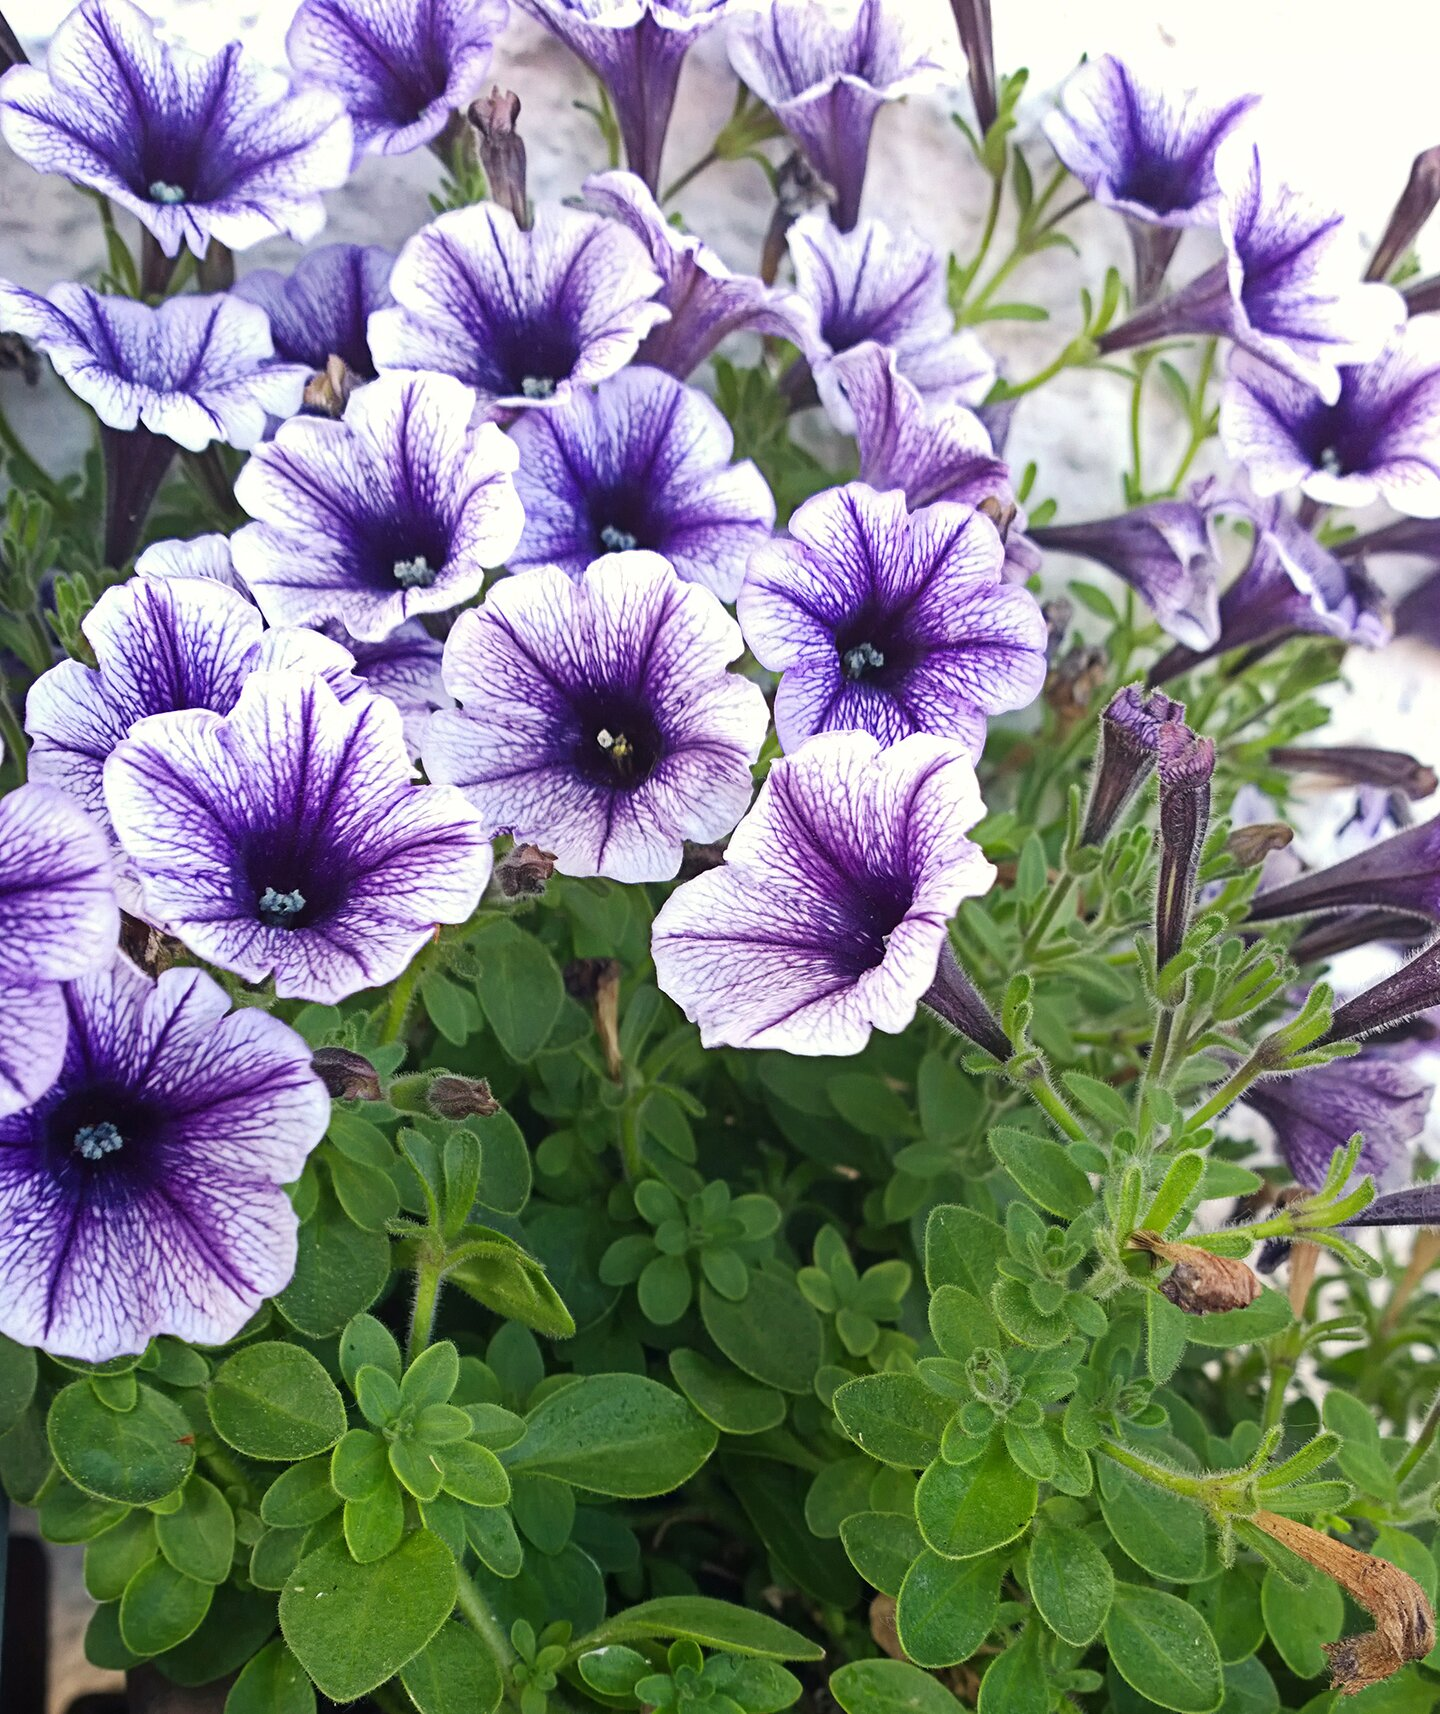 8 Plants That Repel Bugs and Mosquitoes on home depot topiary plants, home depot outdoor plants, home depot nursery plants, home depot low light plants, home depot potted plants, home depot garden plants, home depot tropical plants, home depot trees plants, home depot shade plants, home depot bonsai plants, home depot ground cover plants, home depot flowers plants, home depot flowering plants, home depot water plants, home depot pots for plants, home depot indoor plants, home depot bamboo plants, home depot perennial plants, home depot bedding plants, home depot landscape plants,